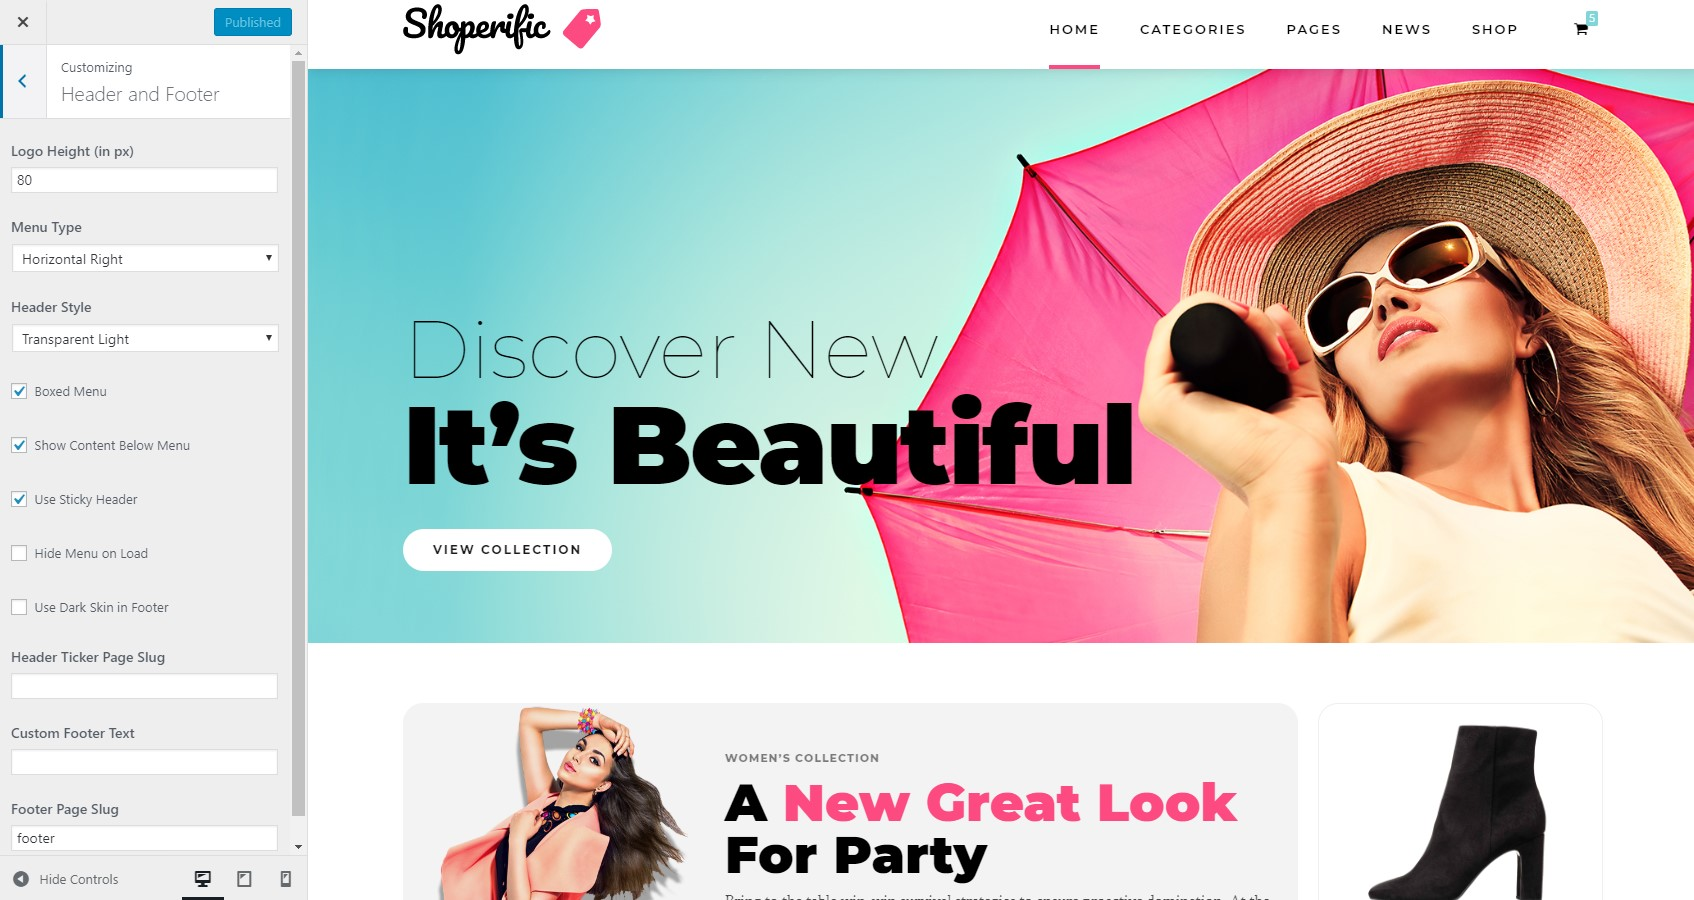 http://documentation.bold-themes.com/shoperific/wp-content/uploads/sites/35/2018/10/header-and-footer.jpg